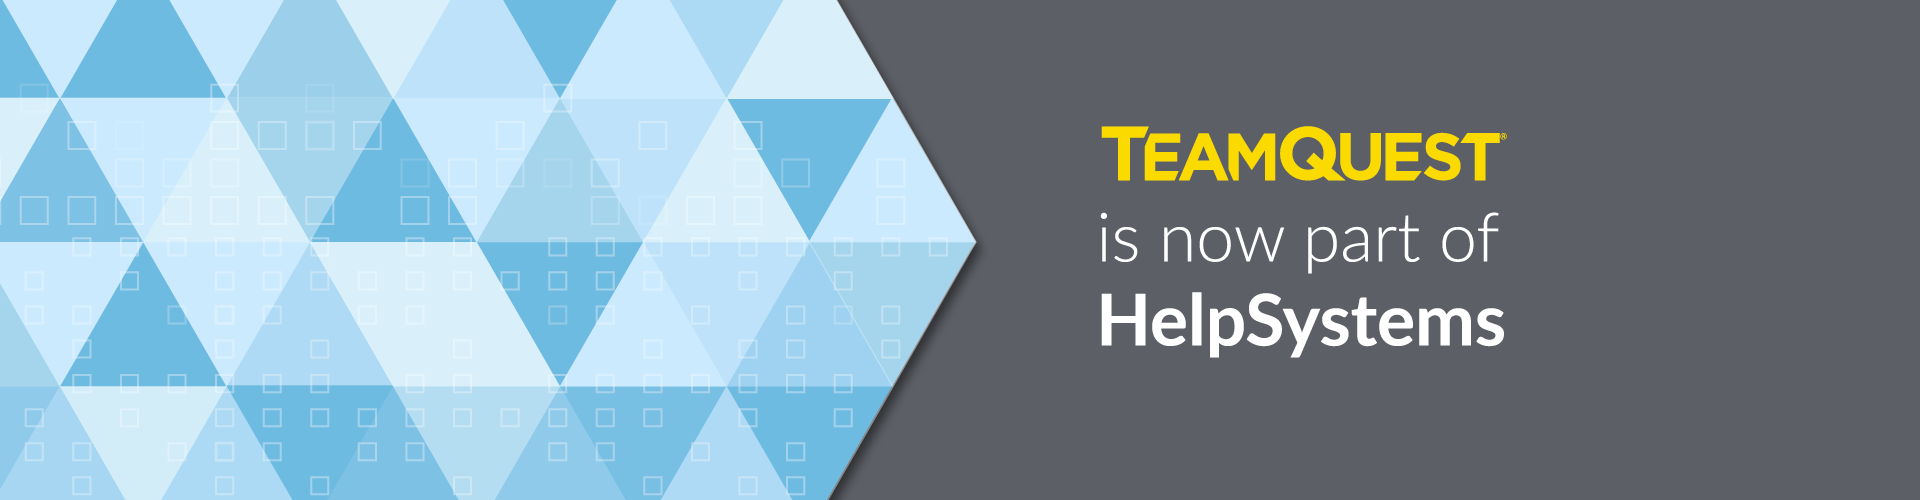 TeamQuest is now HelpSystems